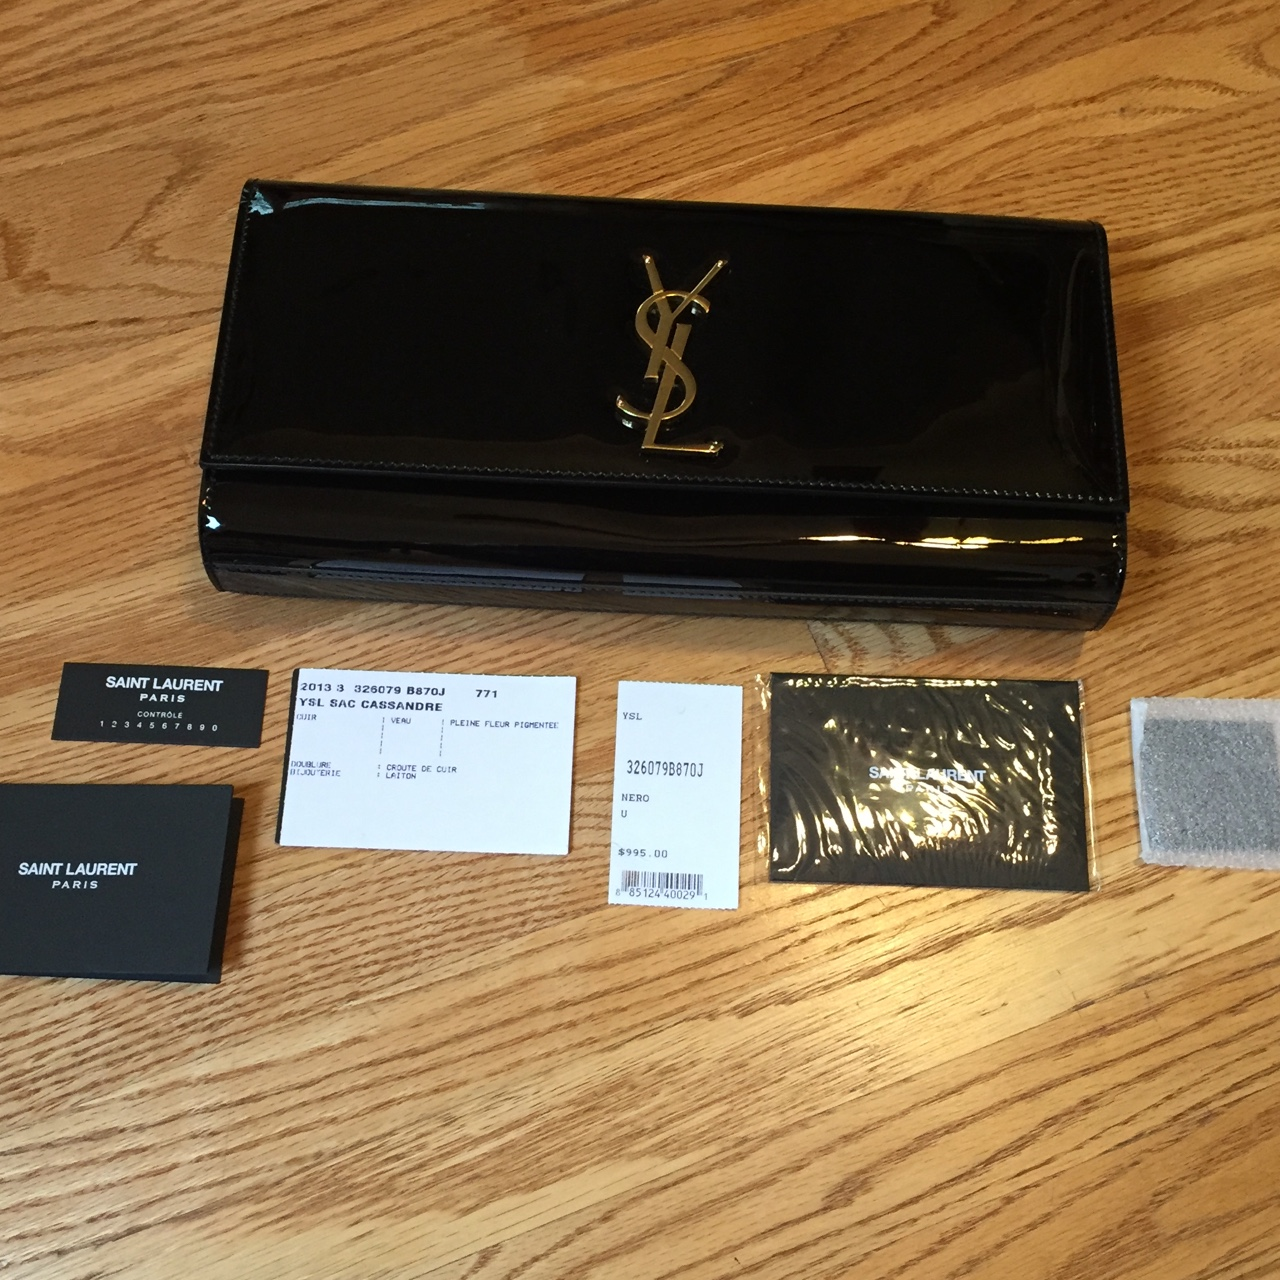 f4776eab9ca43 julietsimms. Los Angeles, United States. Saint Laurent YSL CLUTCH BAG  CASSANDRE ...